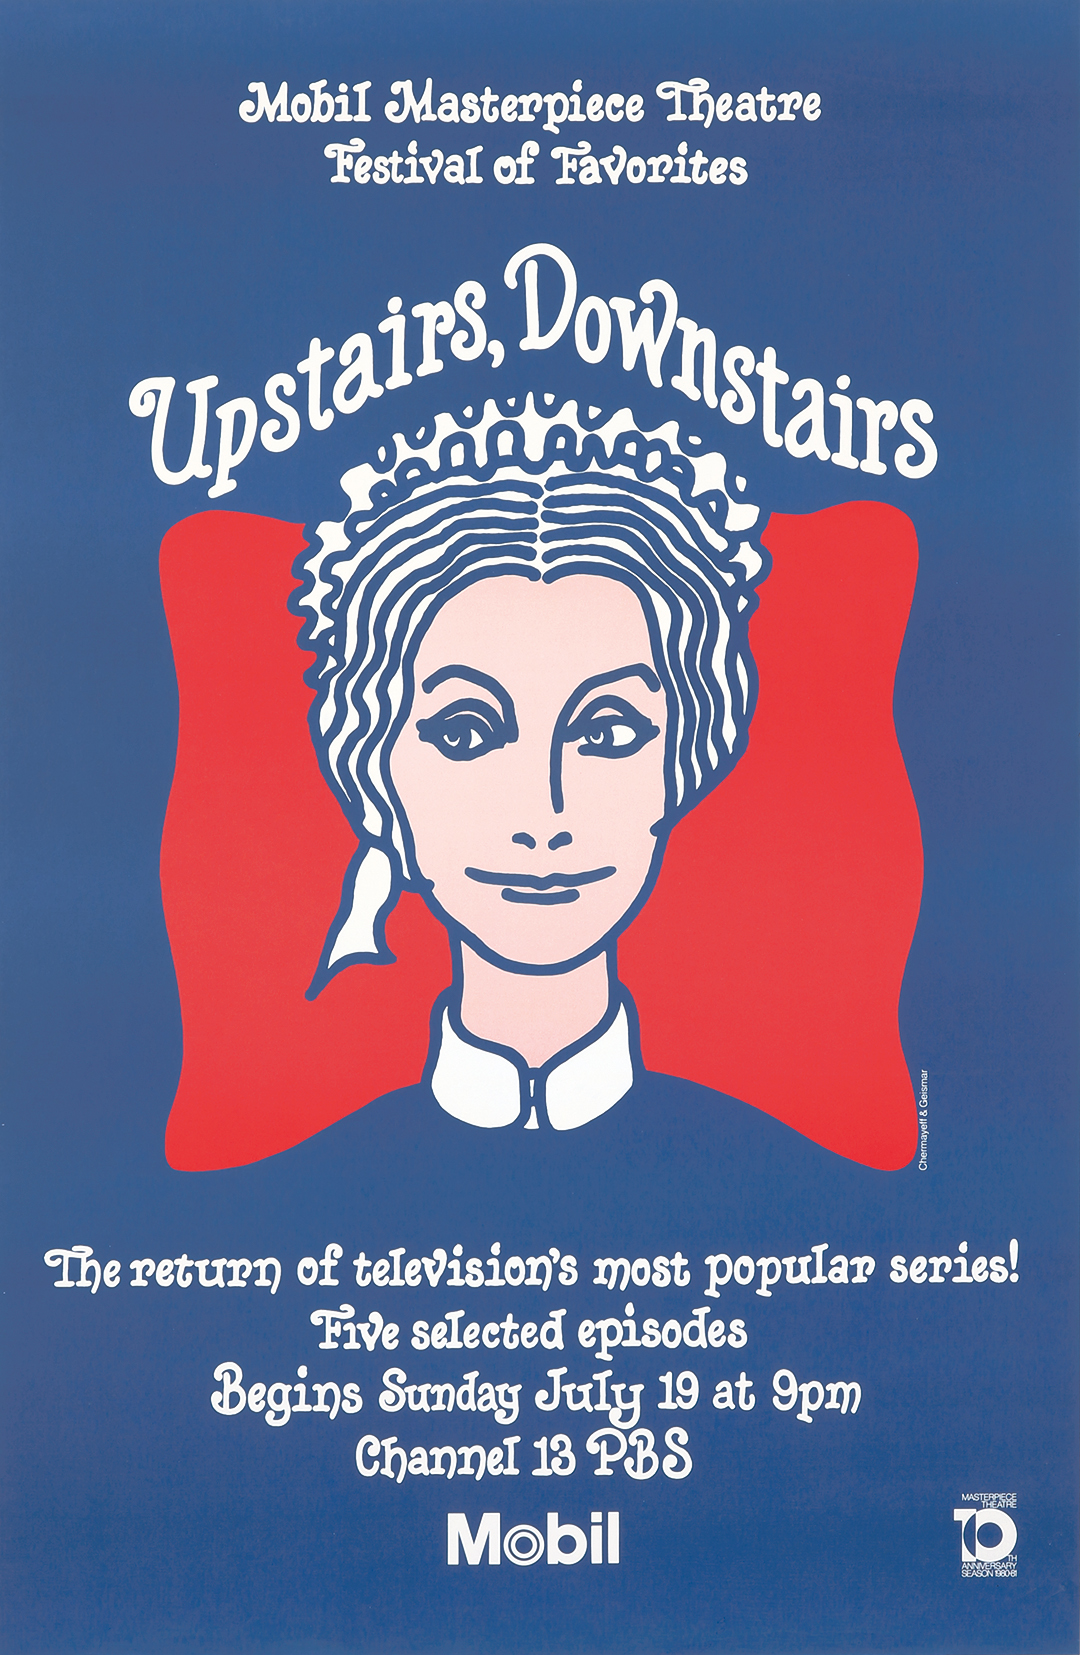 Upstairs, Downstairs. 1981.